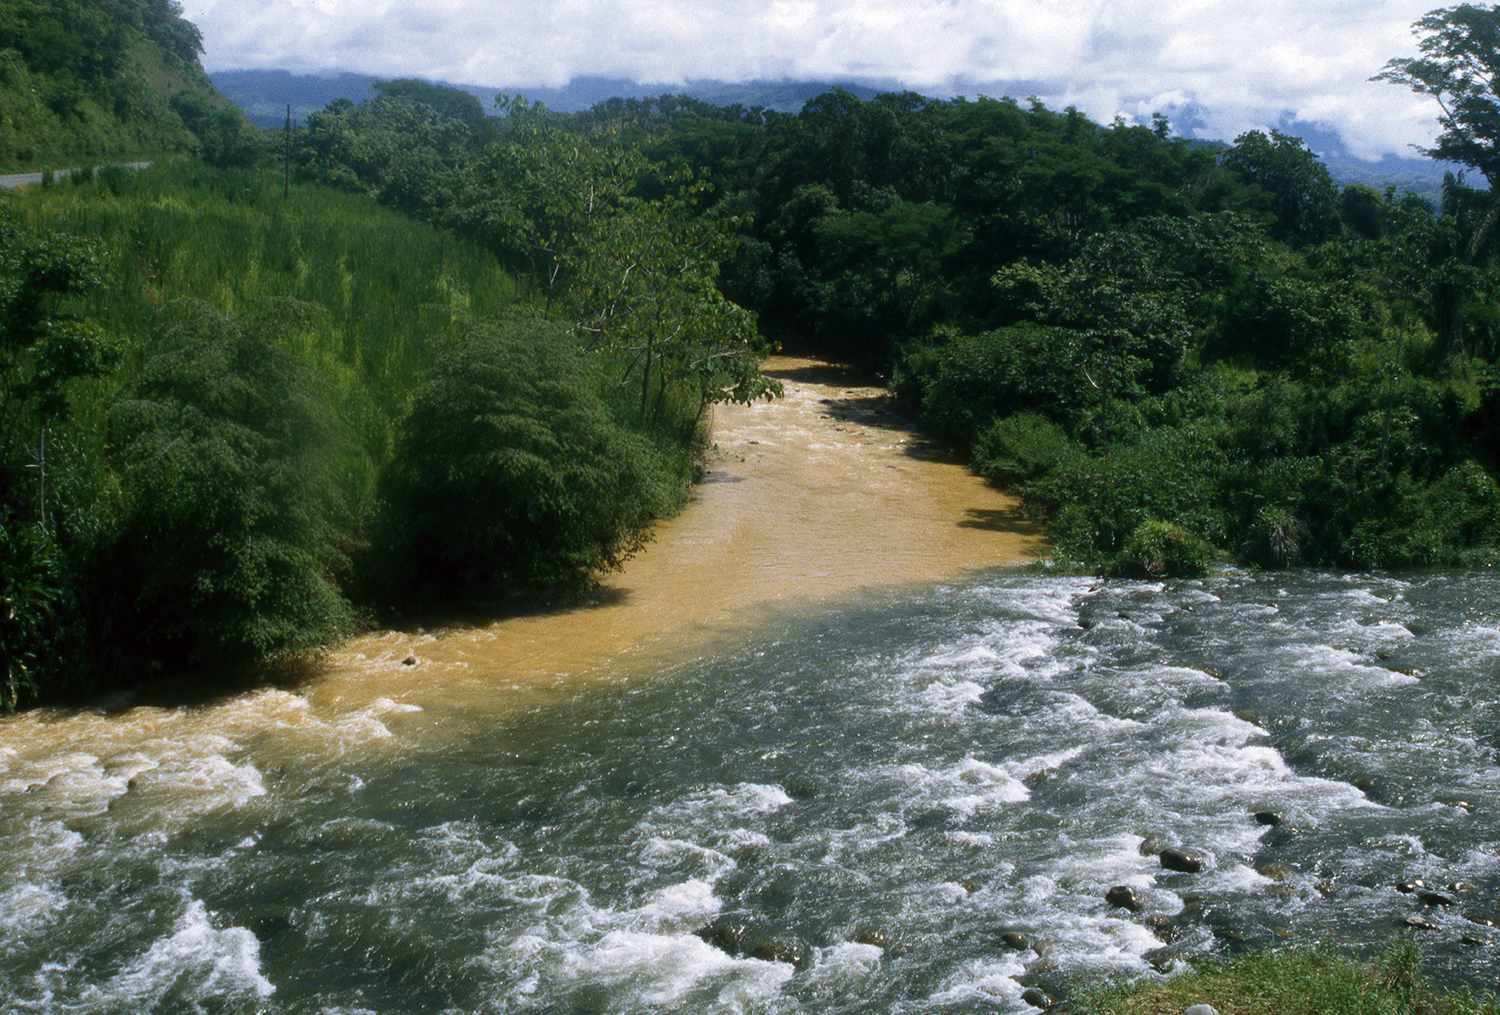 A river draining a deforested area joins a river (foreground) draining a more pristine region.